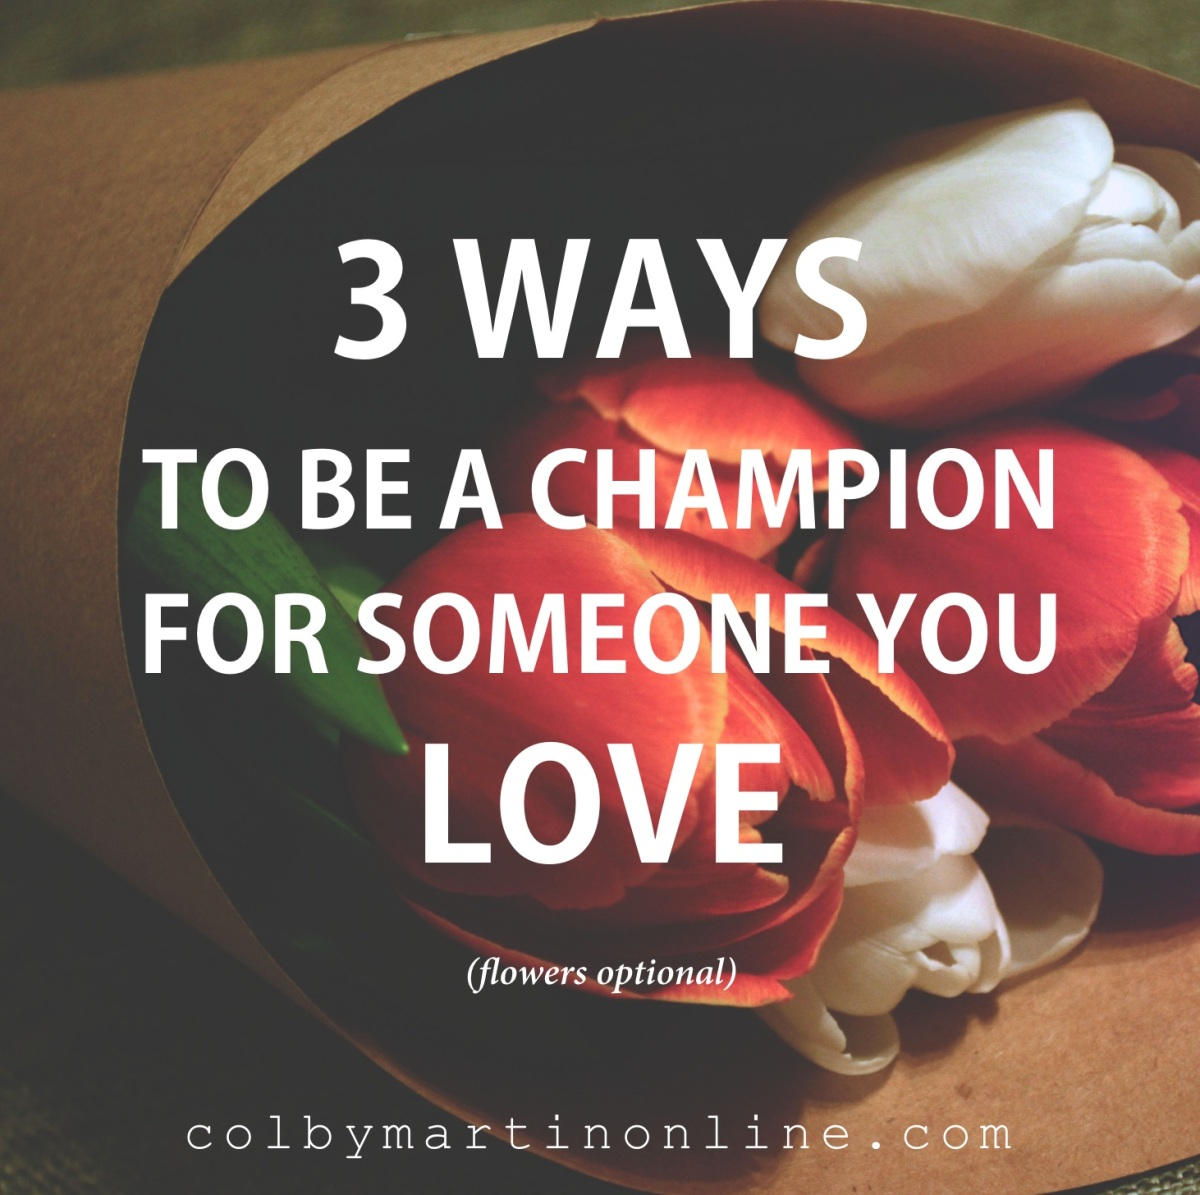 Three Ways to be a Champion for Someone You Love